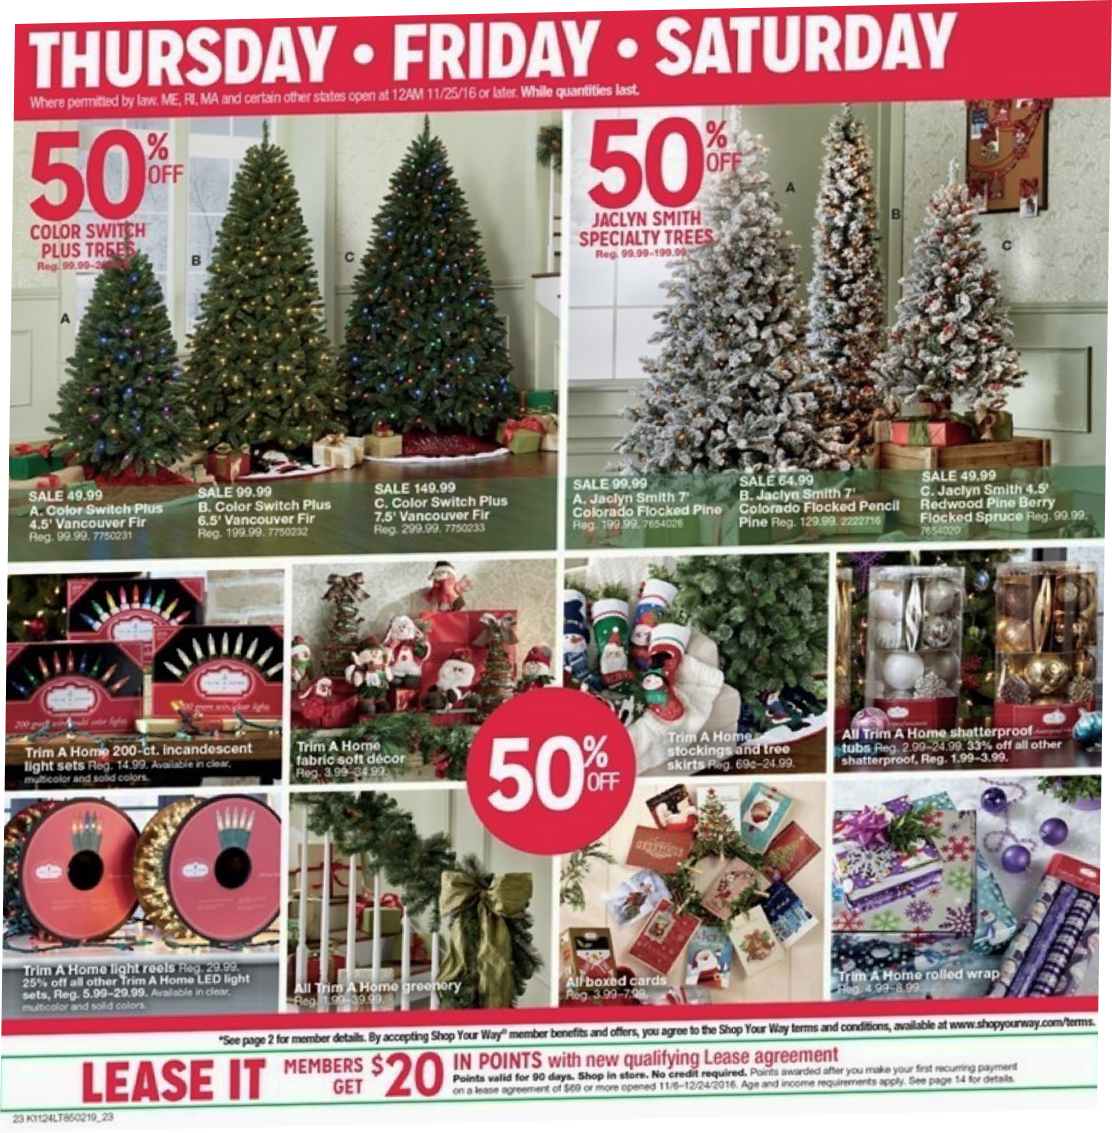 Kmart Christmas Trees Jaclyn Smith.Christmas Tree Kmart Black Friday Toffee Art